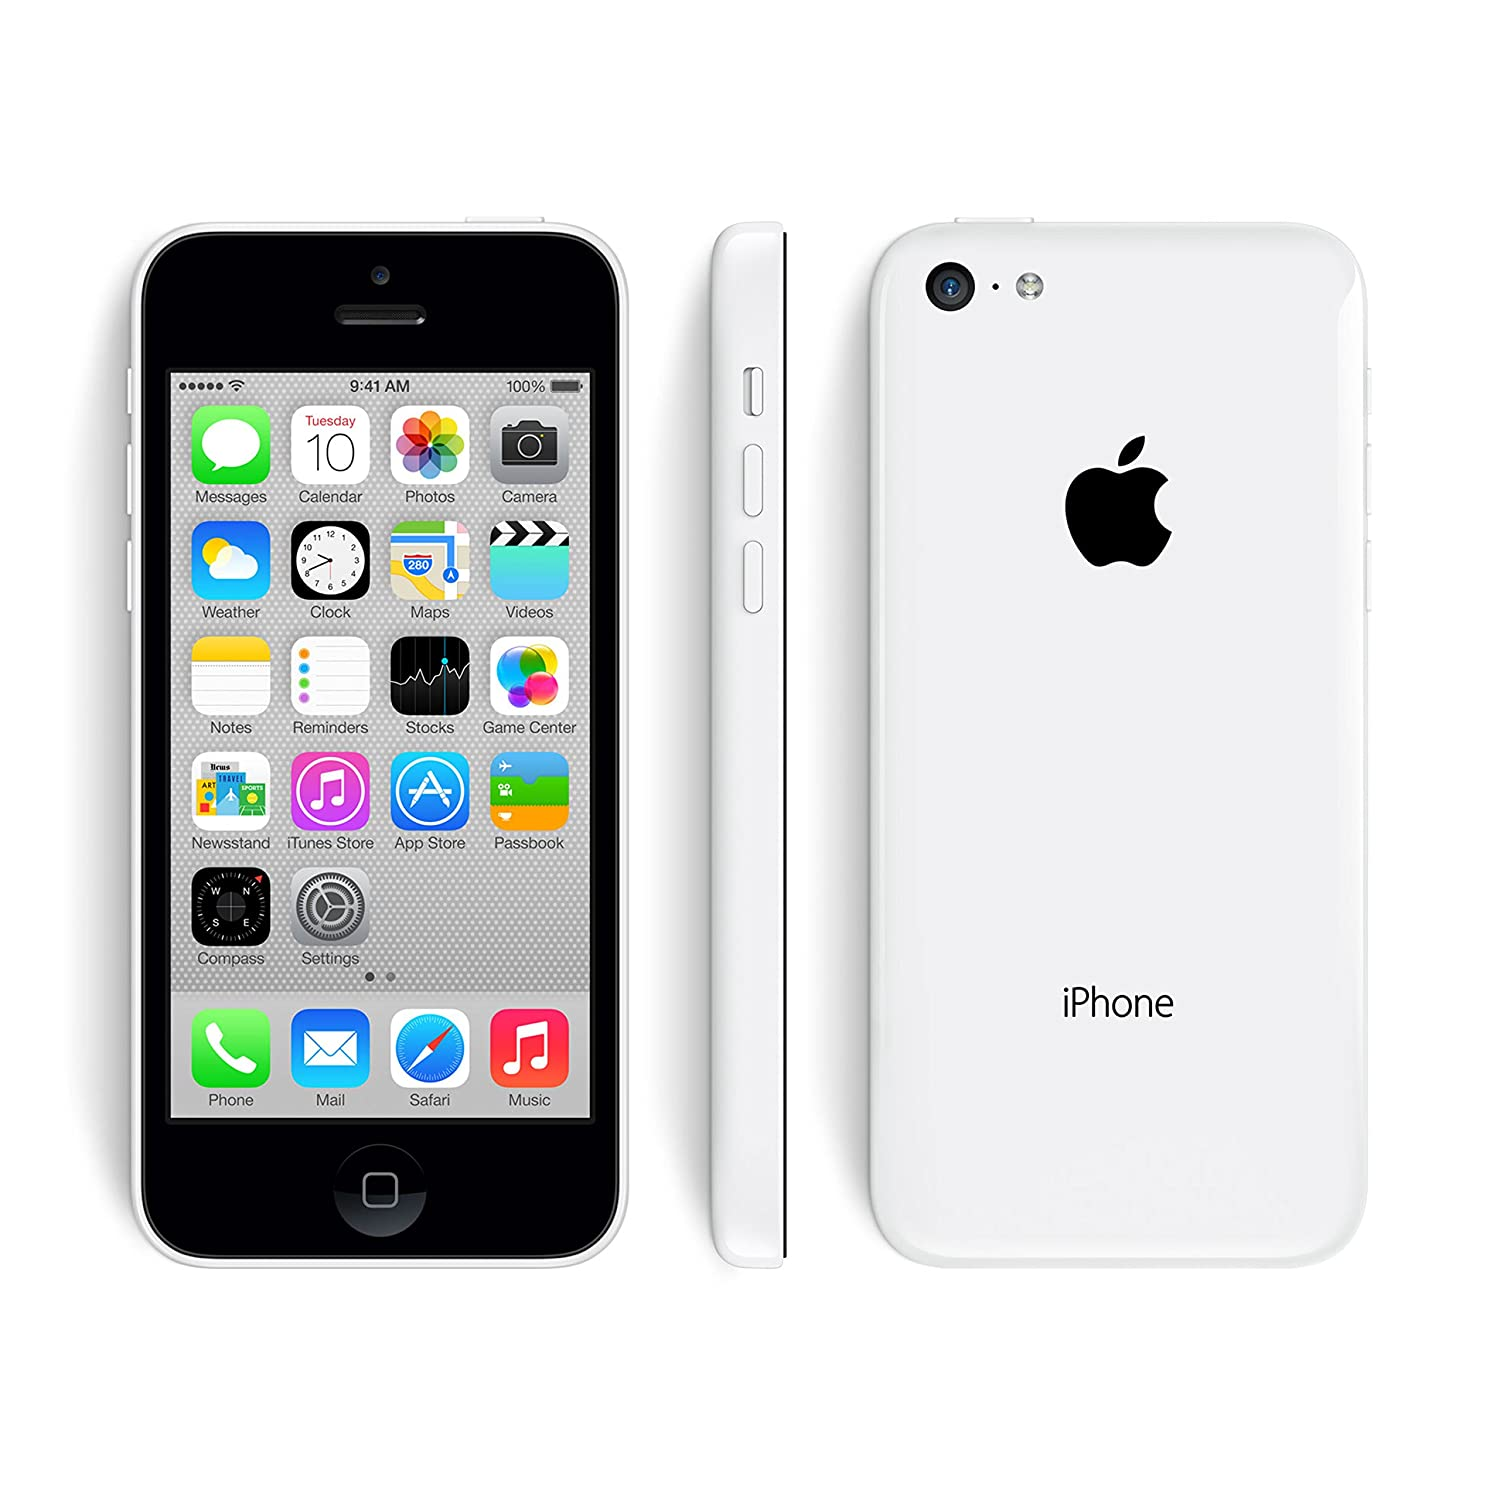 Amazon.com: Apple iPhone 5C 16GB 4G LTE White - Verizon Factory ...